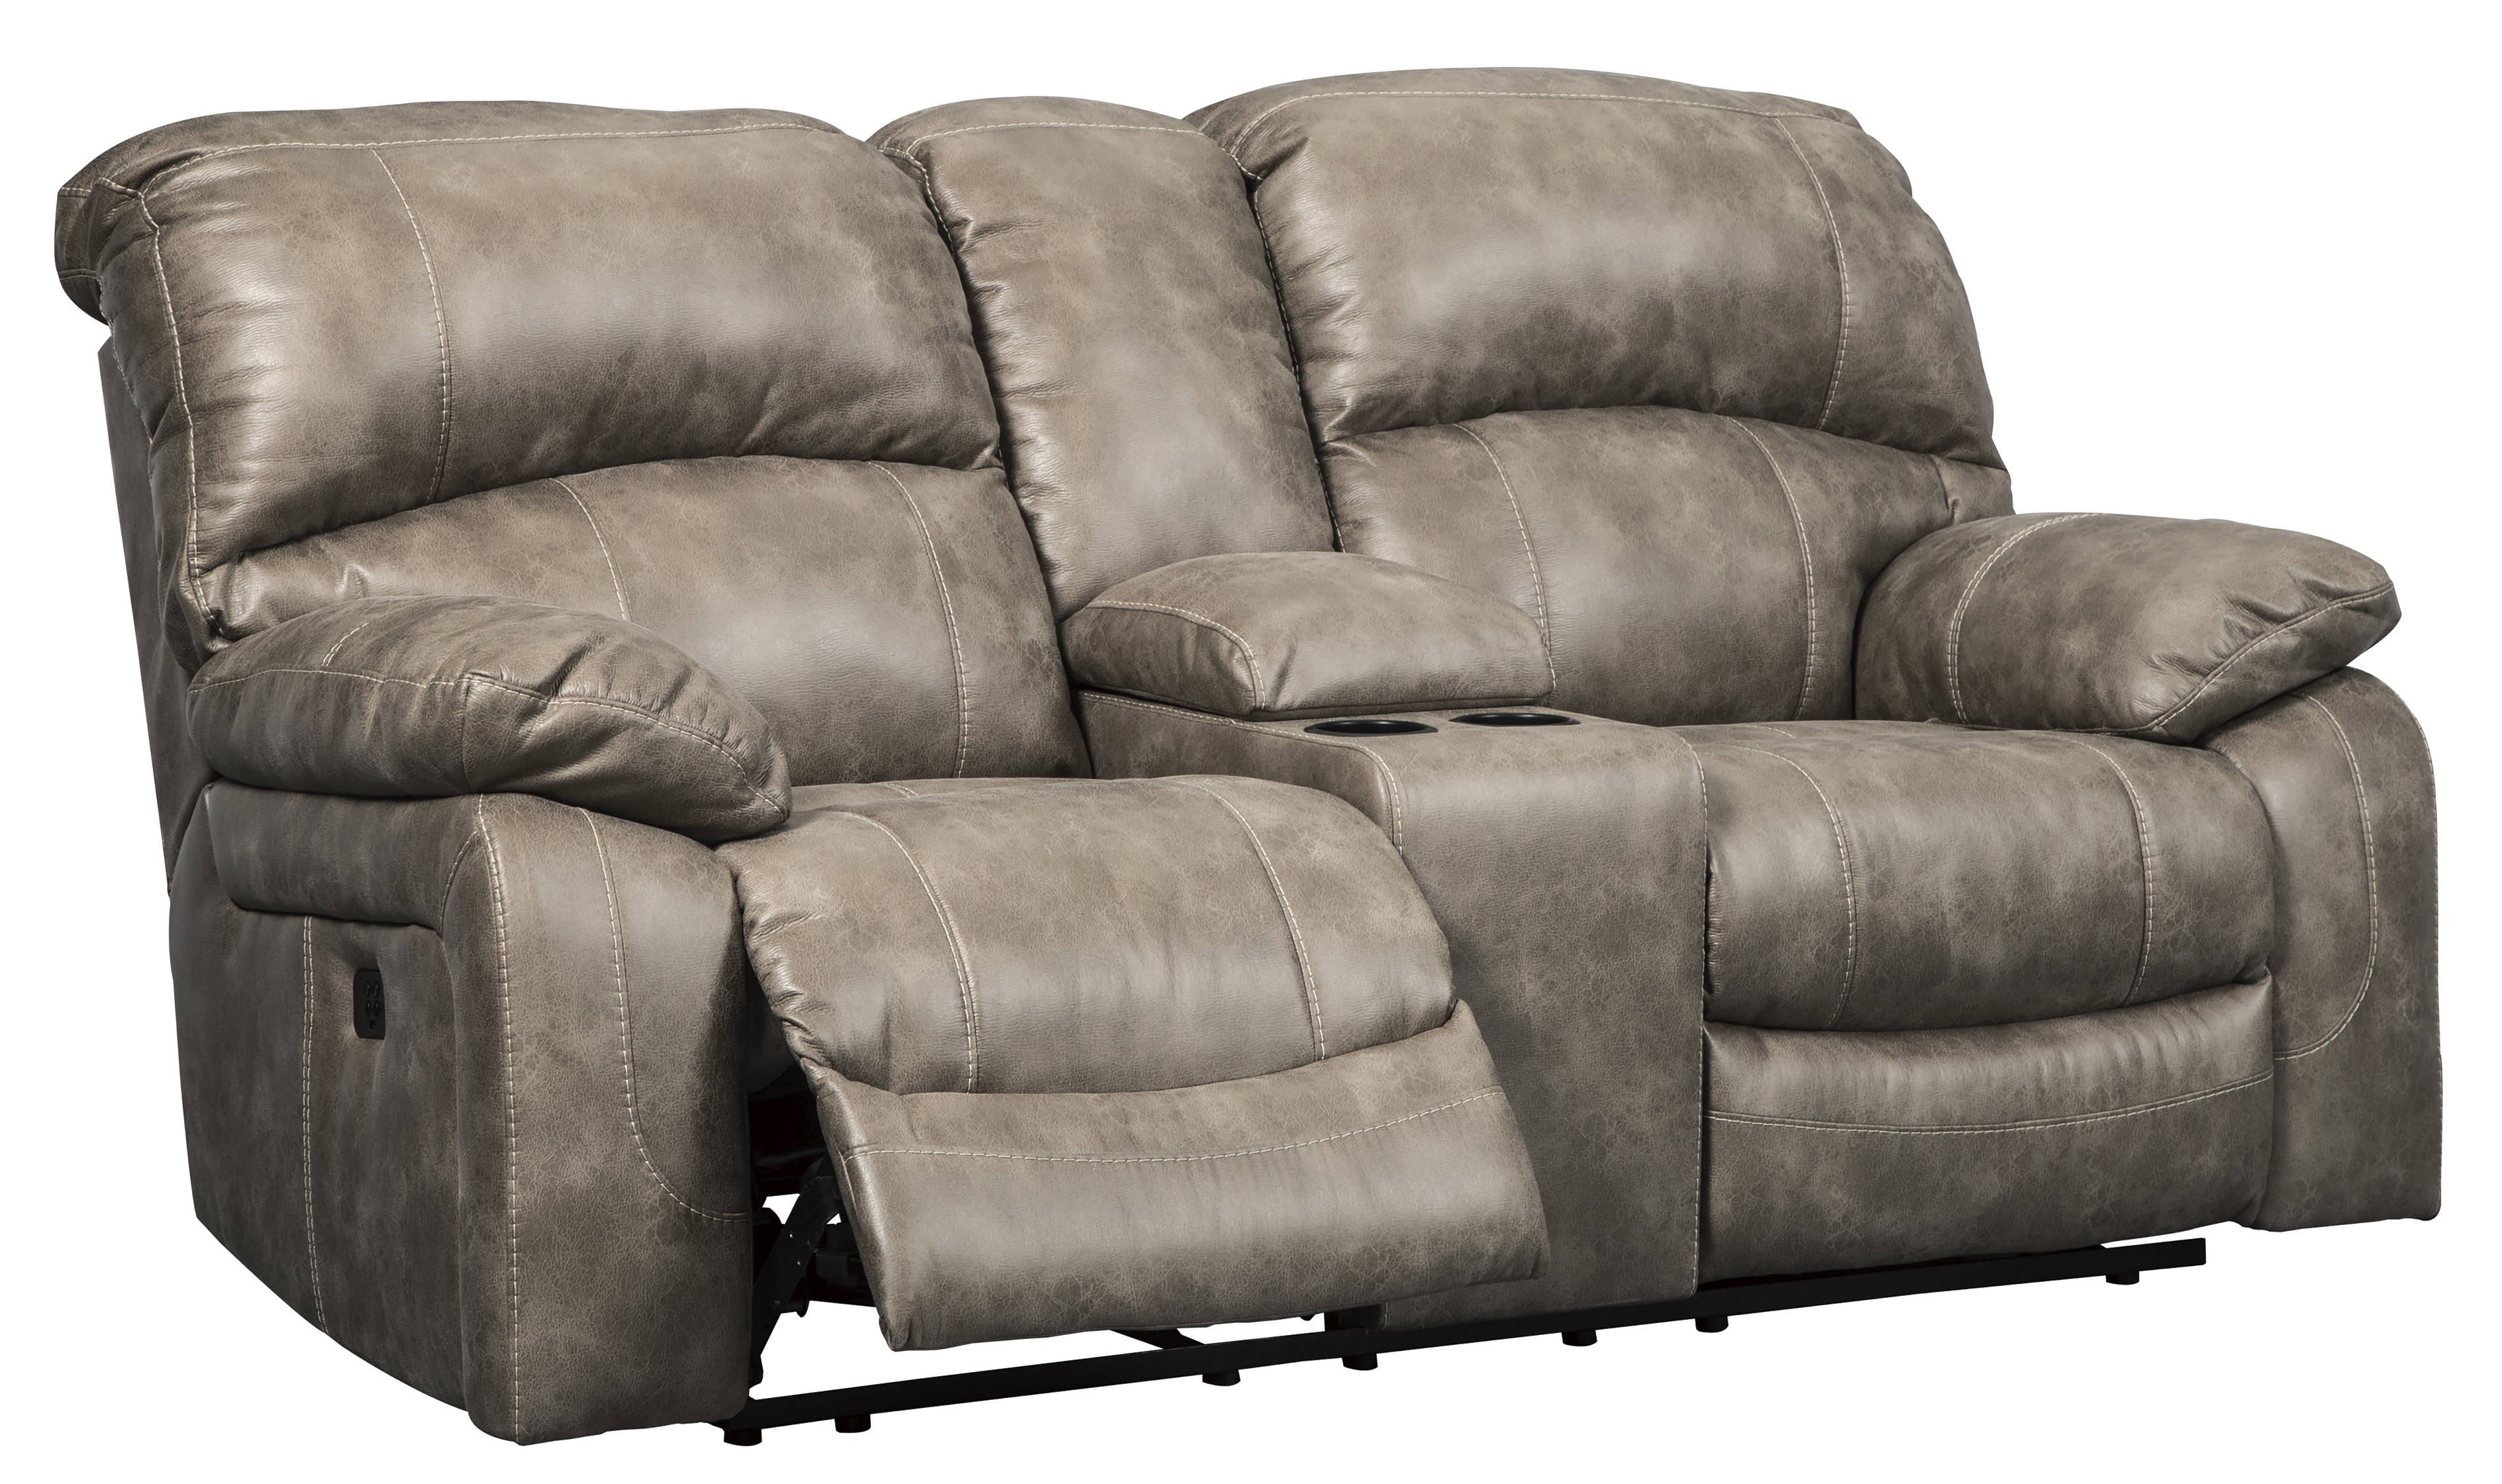 Ashley Furniture Dunwell Driftwood Power Reclining Loveseat The